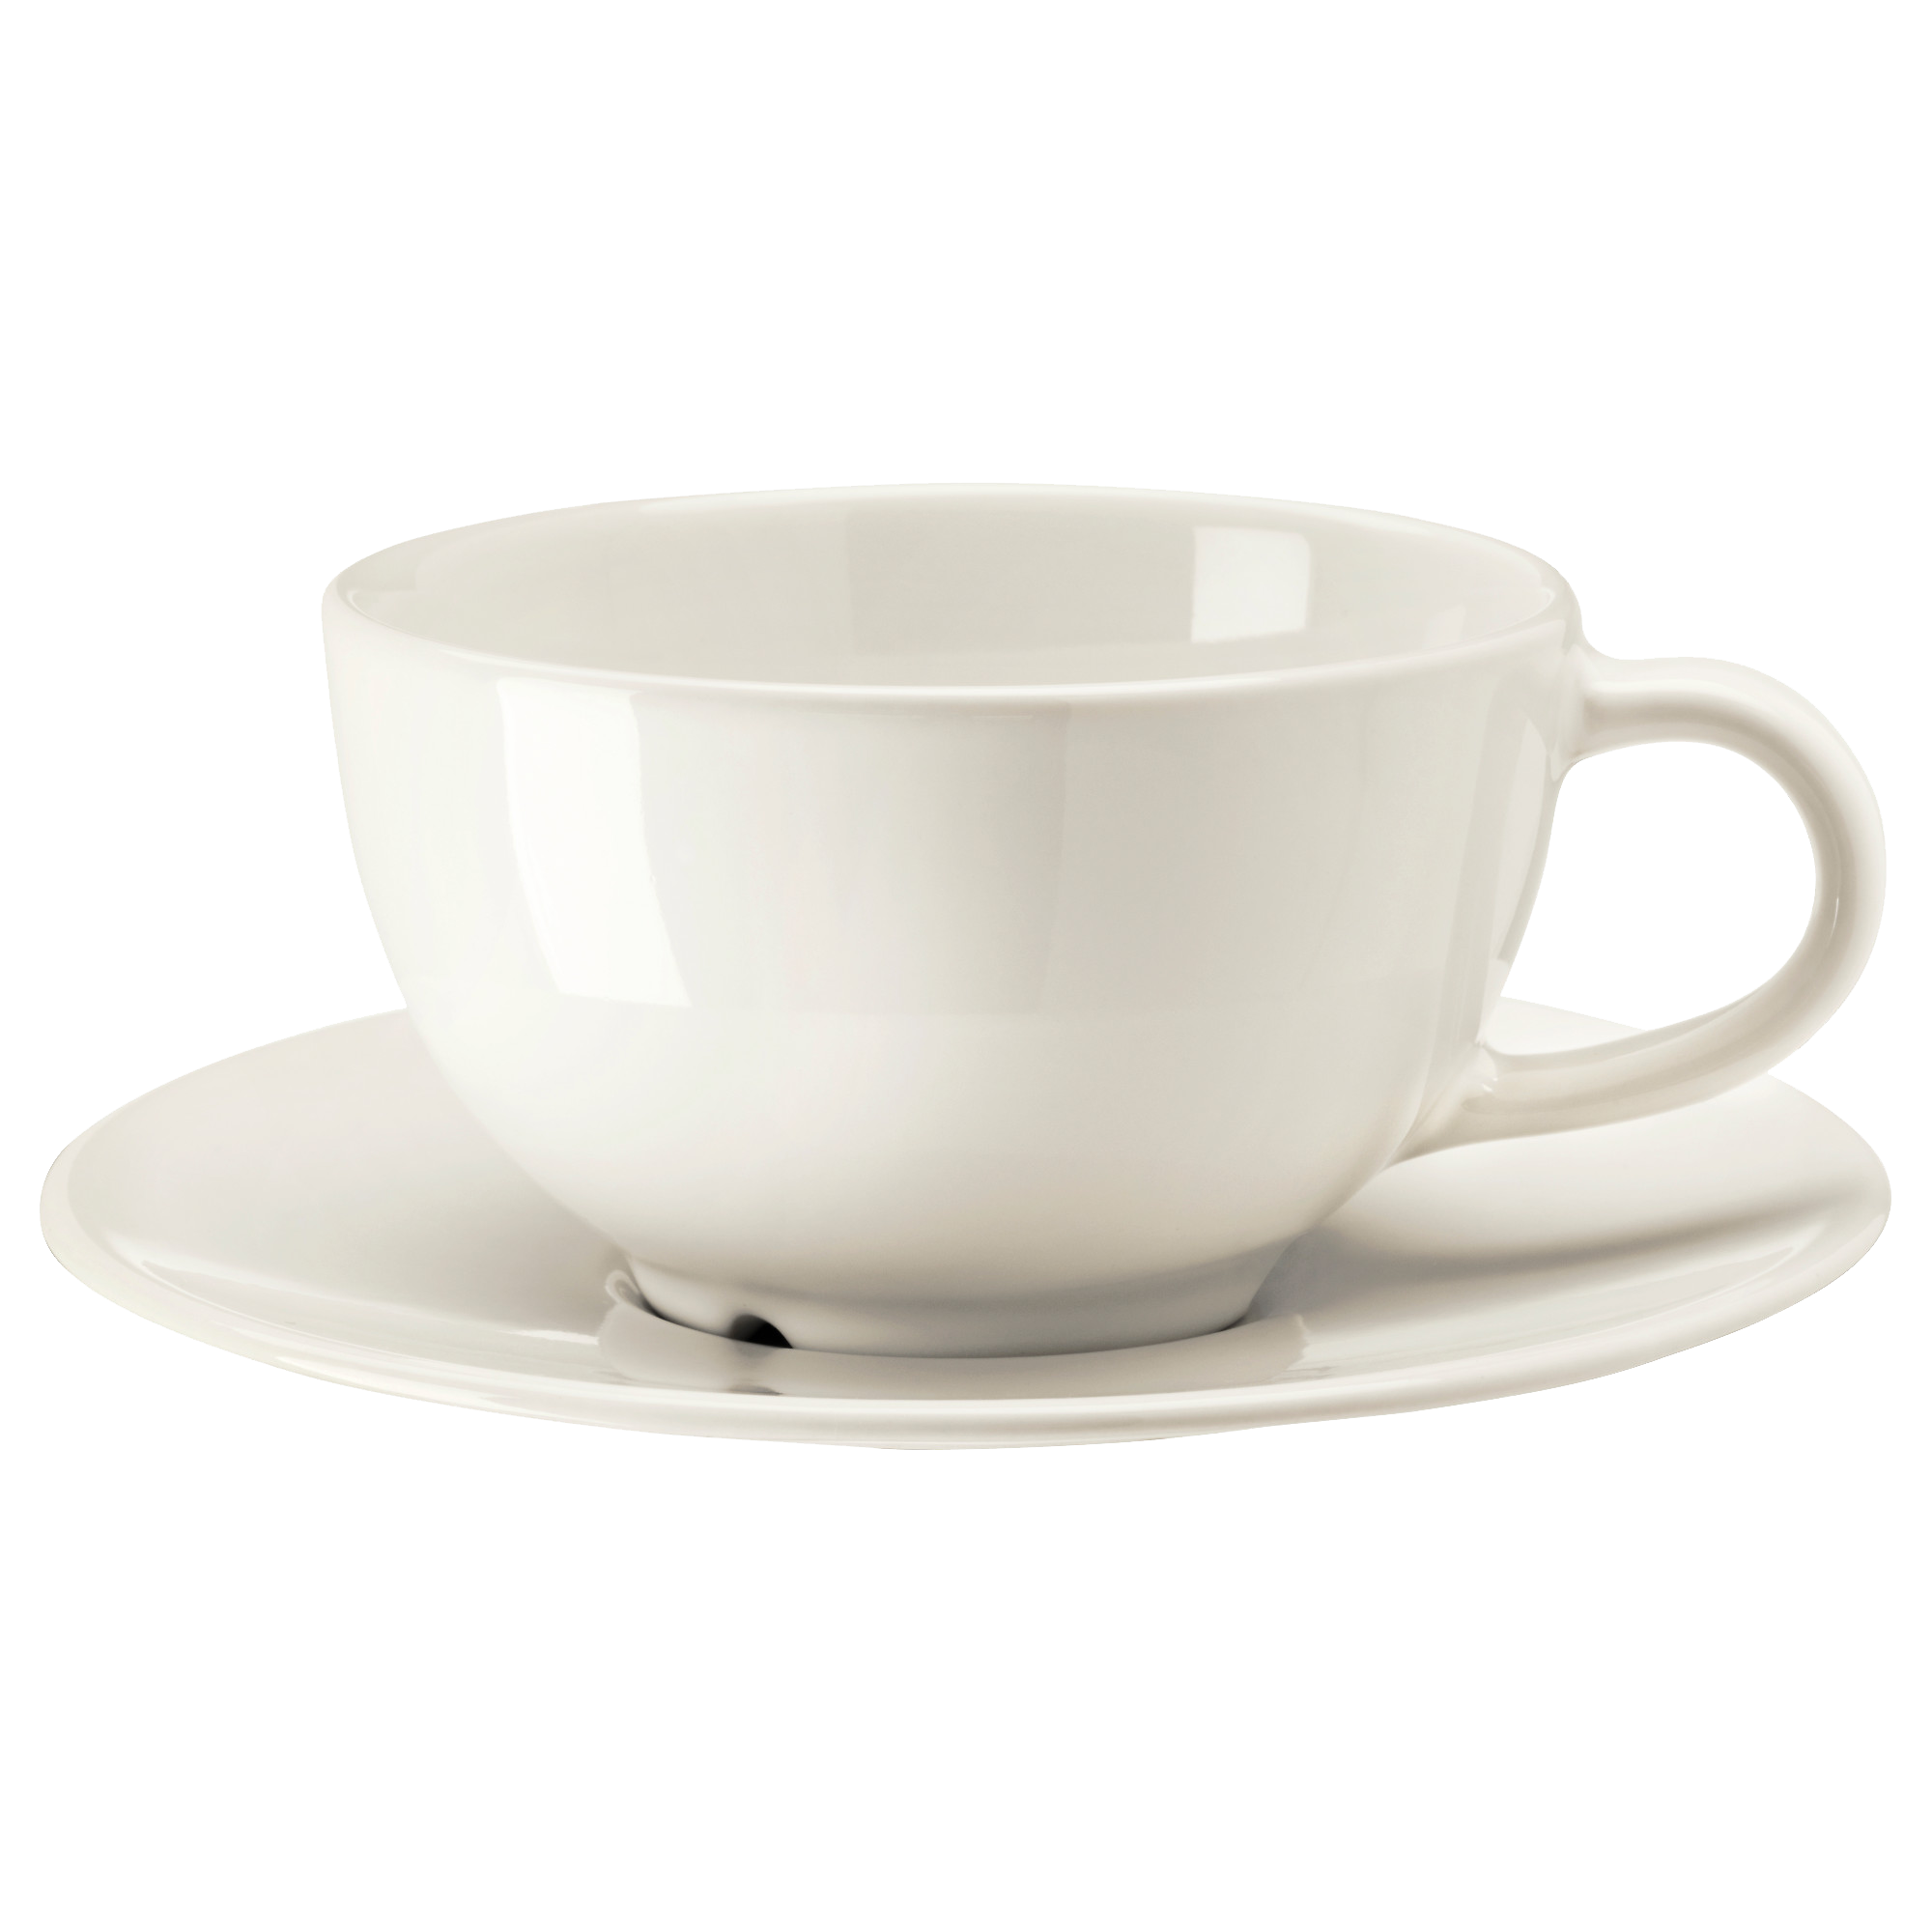 Tea Cup Png Free Tea Cup Png Transparent Images 31155 Pngio